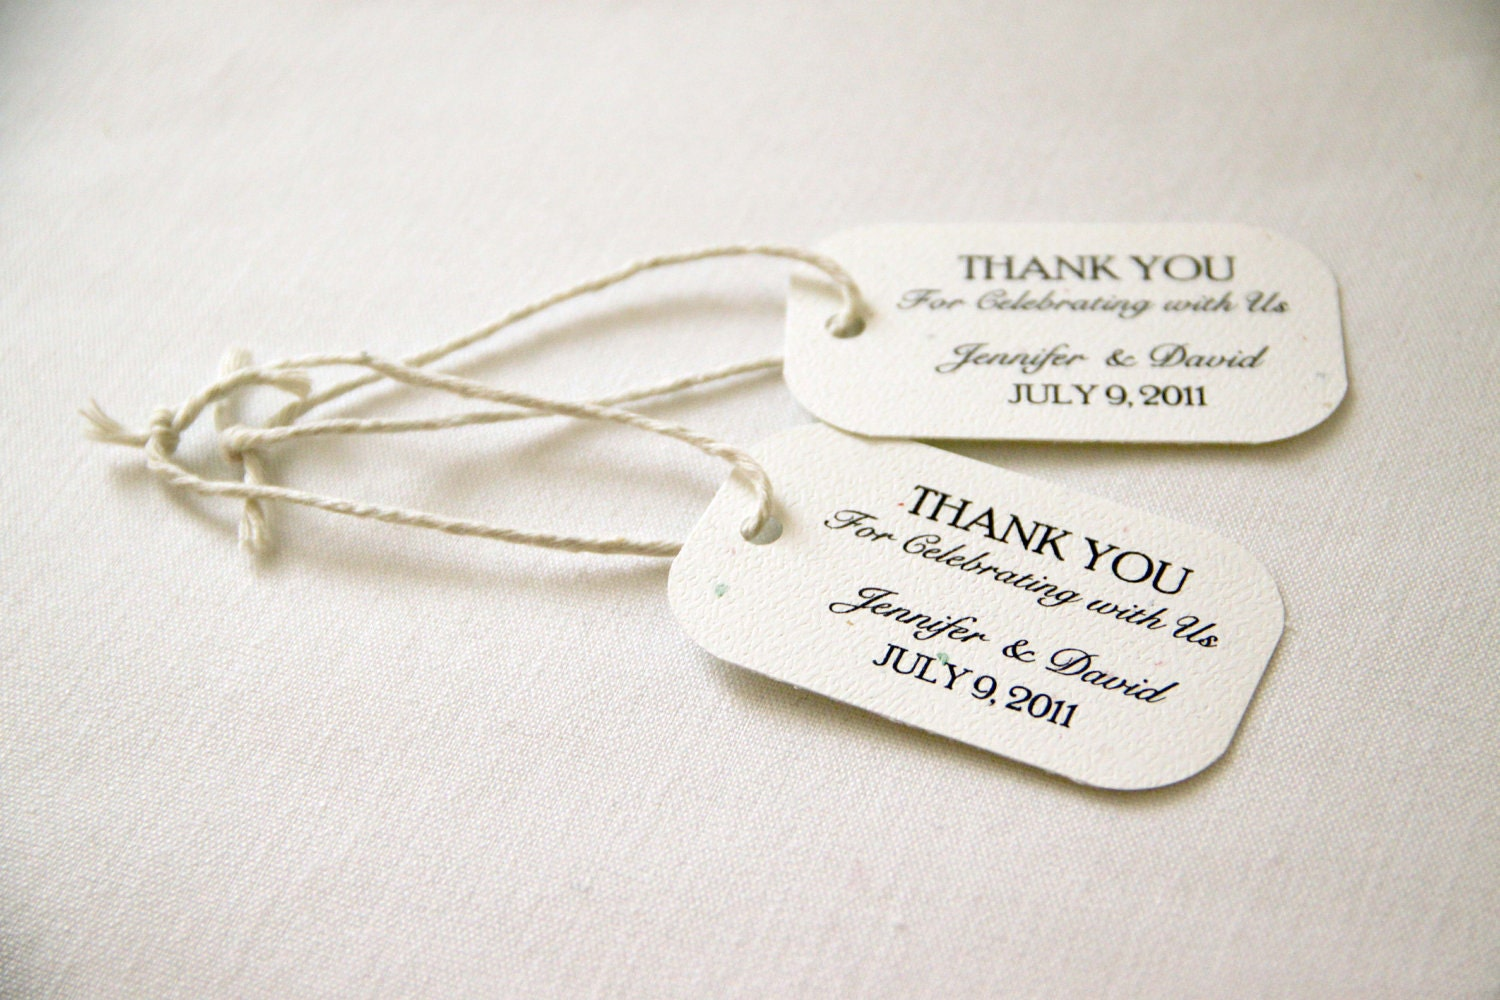 Wedding Gift Tags Suggestions : 150 Mini Wedding Favor Gift Tags Classic Thank You